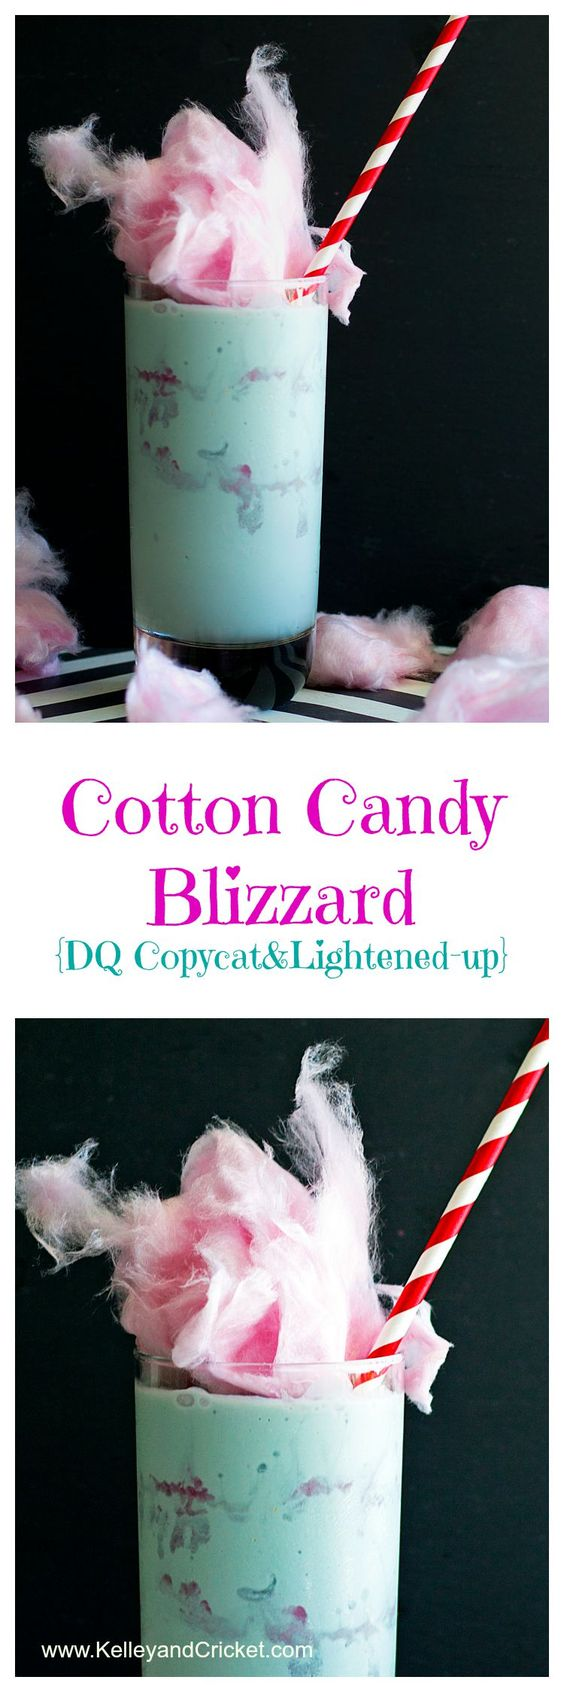 Lightened-up Dairy Queen Cotton Candy Blizzard copycat. Gluten-free and dairy free recipe options too!